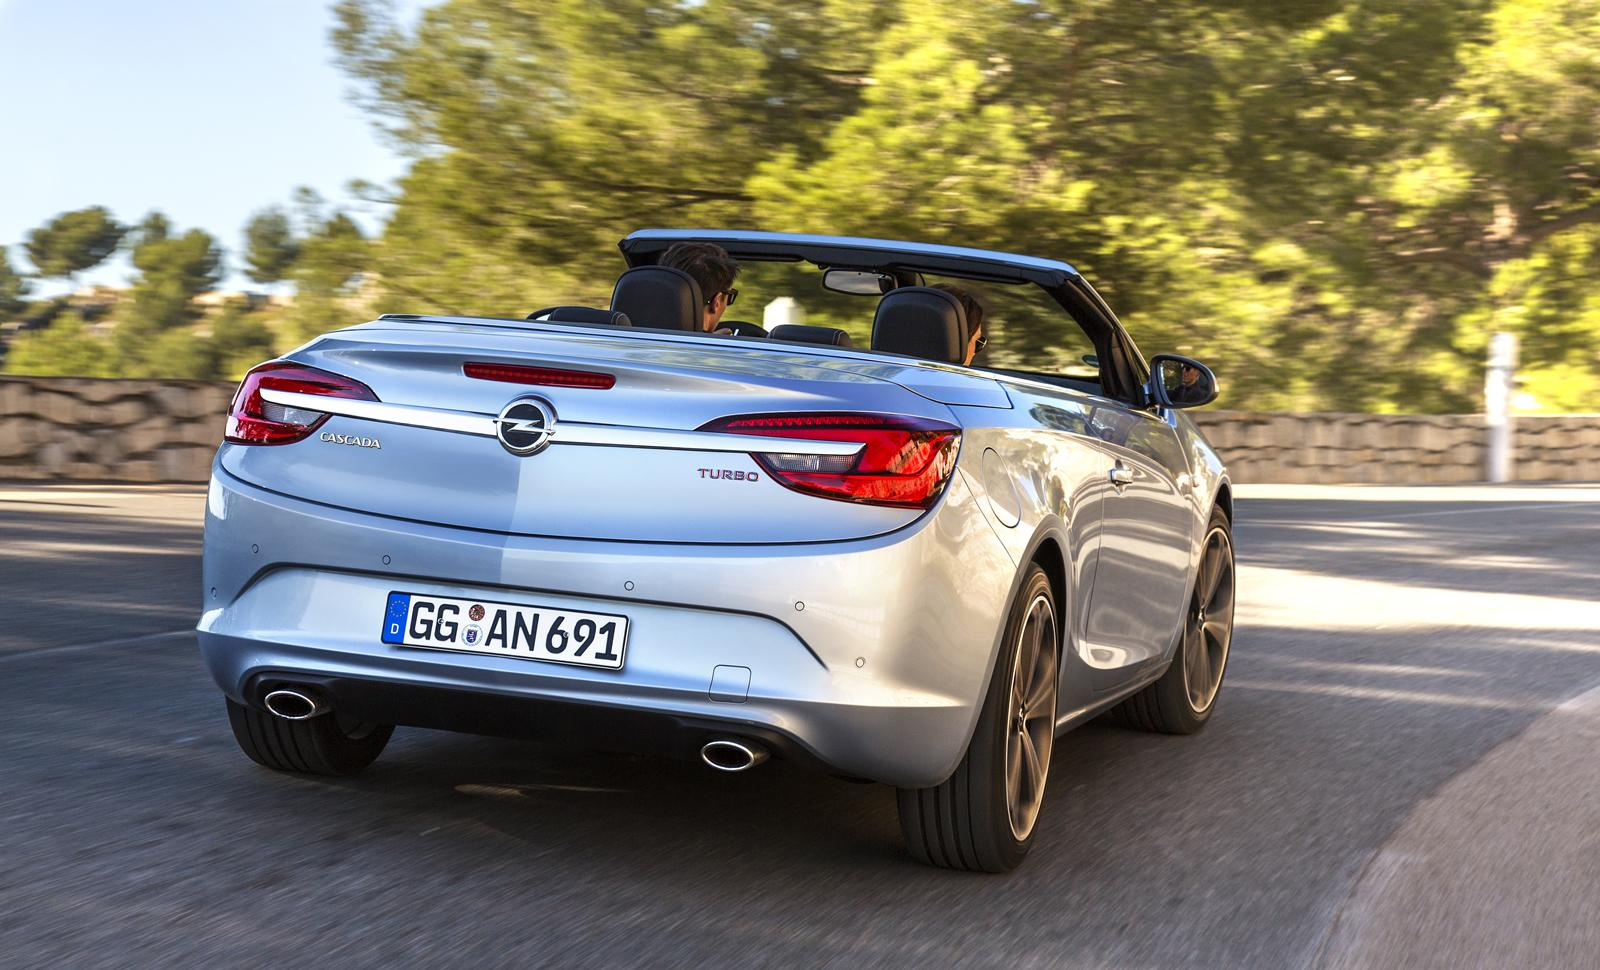 opel cascada turbo sales debut priced at eur29 490. Black Bedroom Furniture Sets. Home Design Ideas